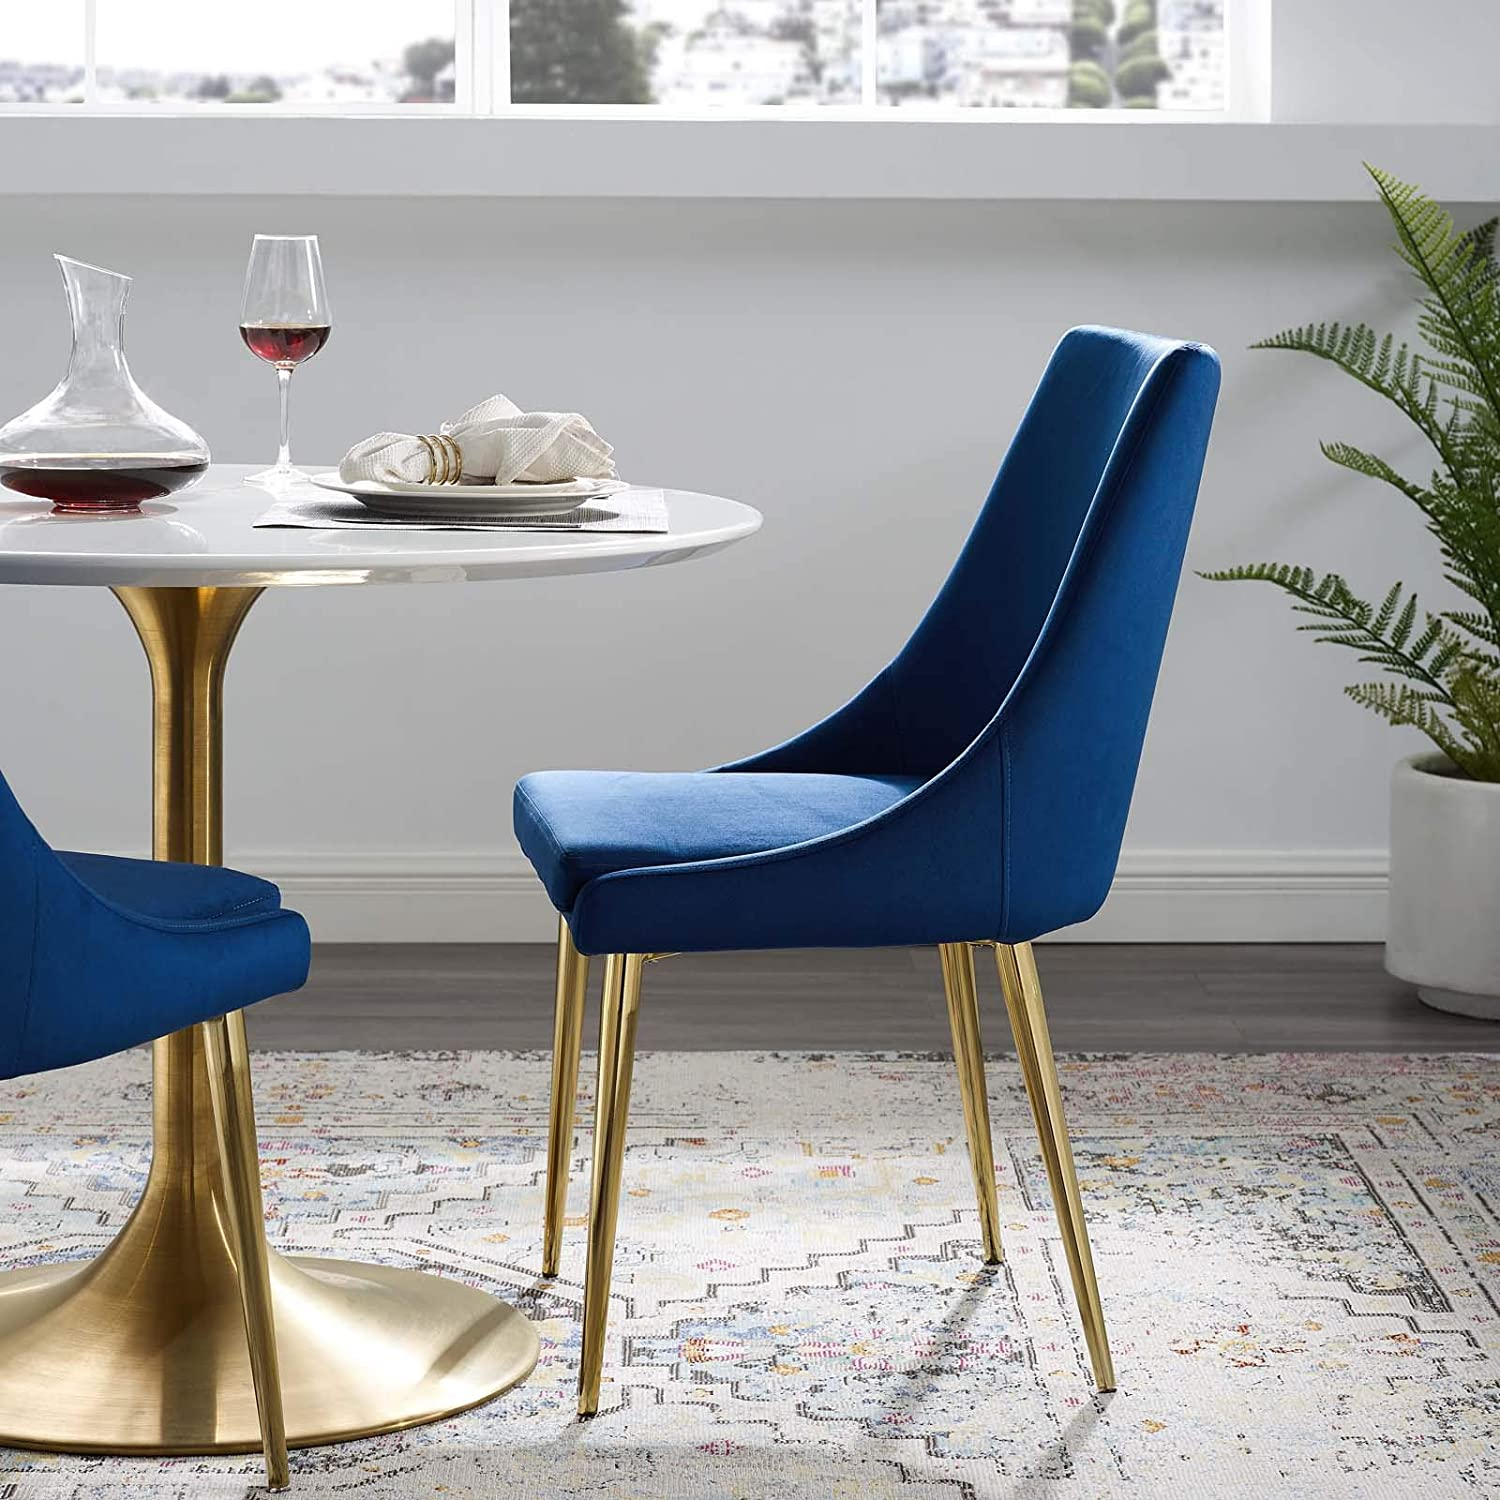 Modway Viscount Performance Velvet Dining Side Chair with Gold Stainless Steel Legs in Navy